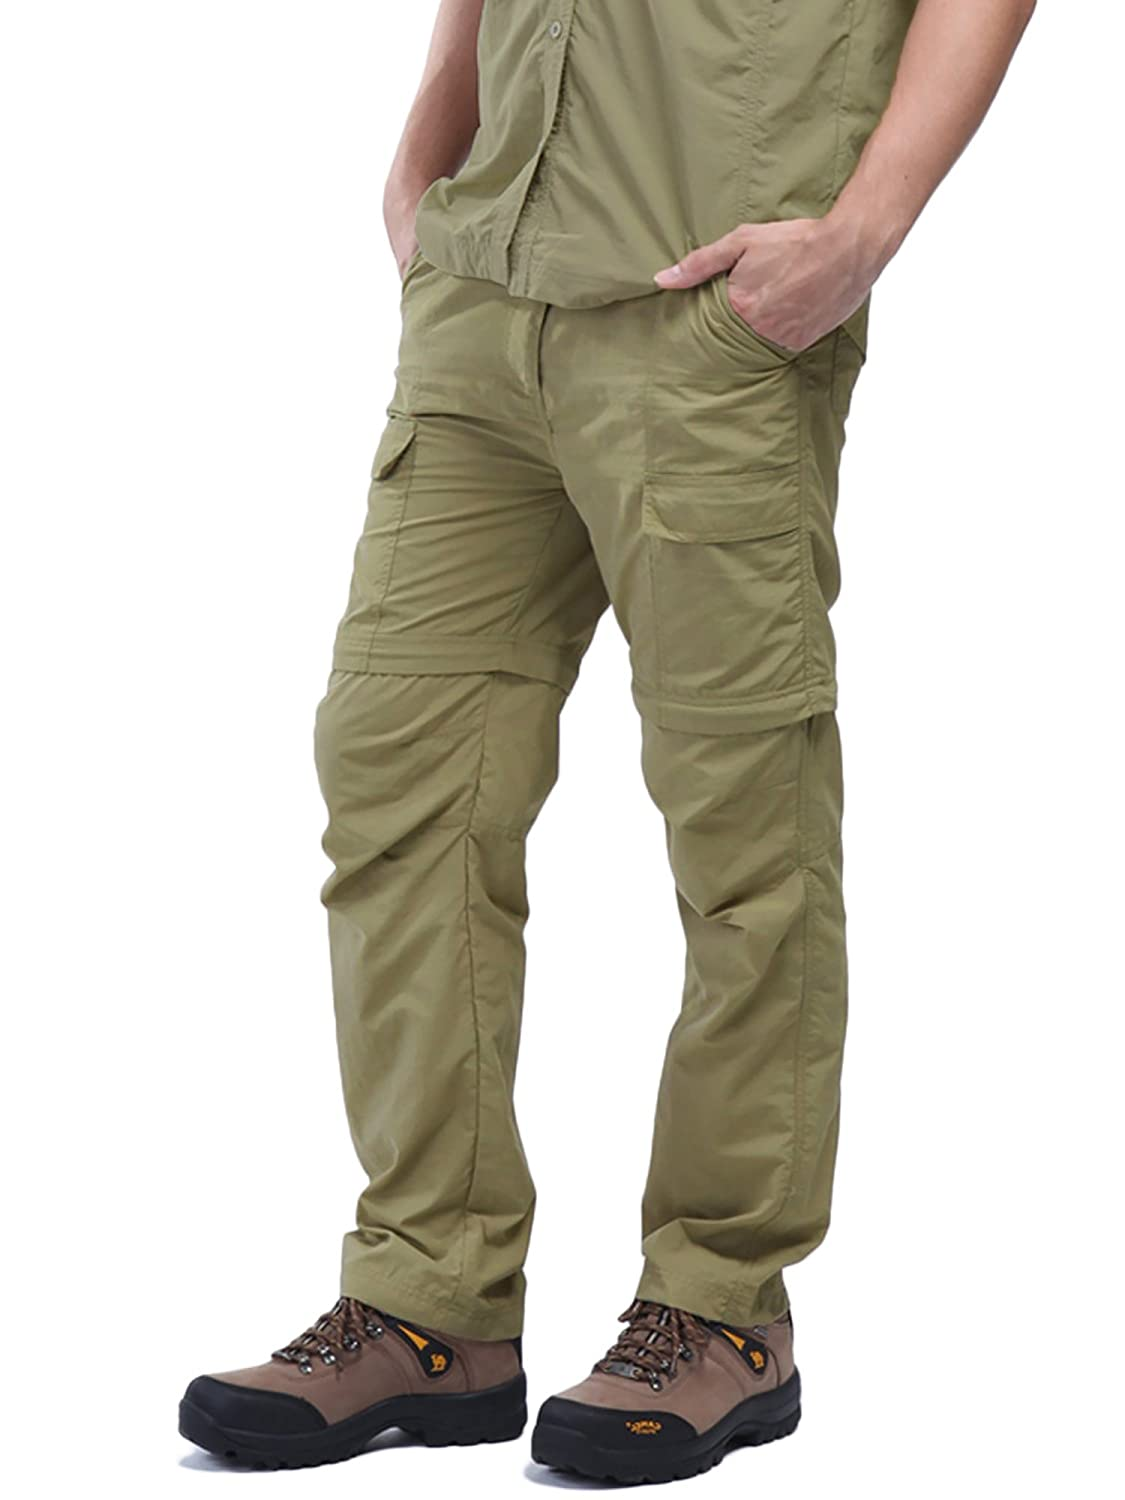 Men's Wild Hiking Work Cargo Quick Dry Pants Stretchy Waterproof Trousers CloSoul Direct